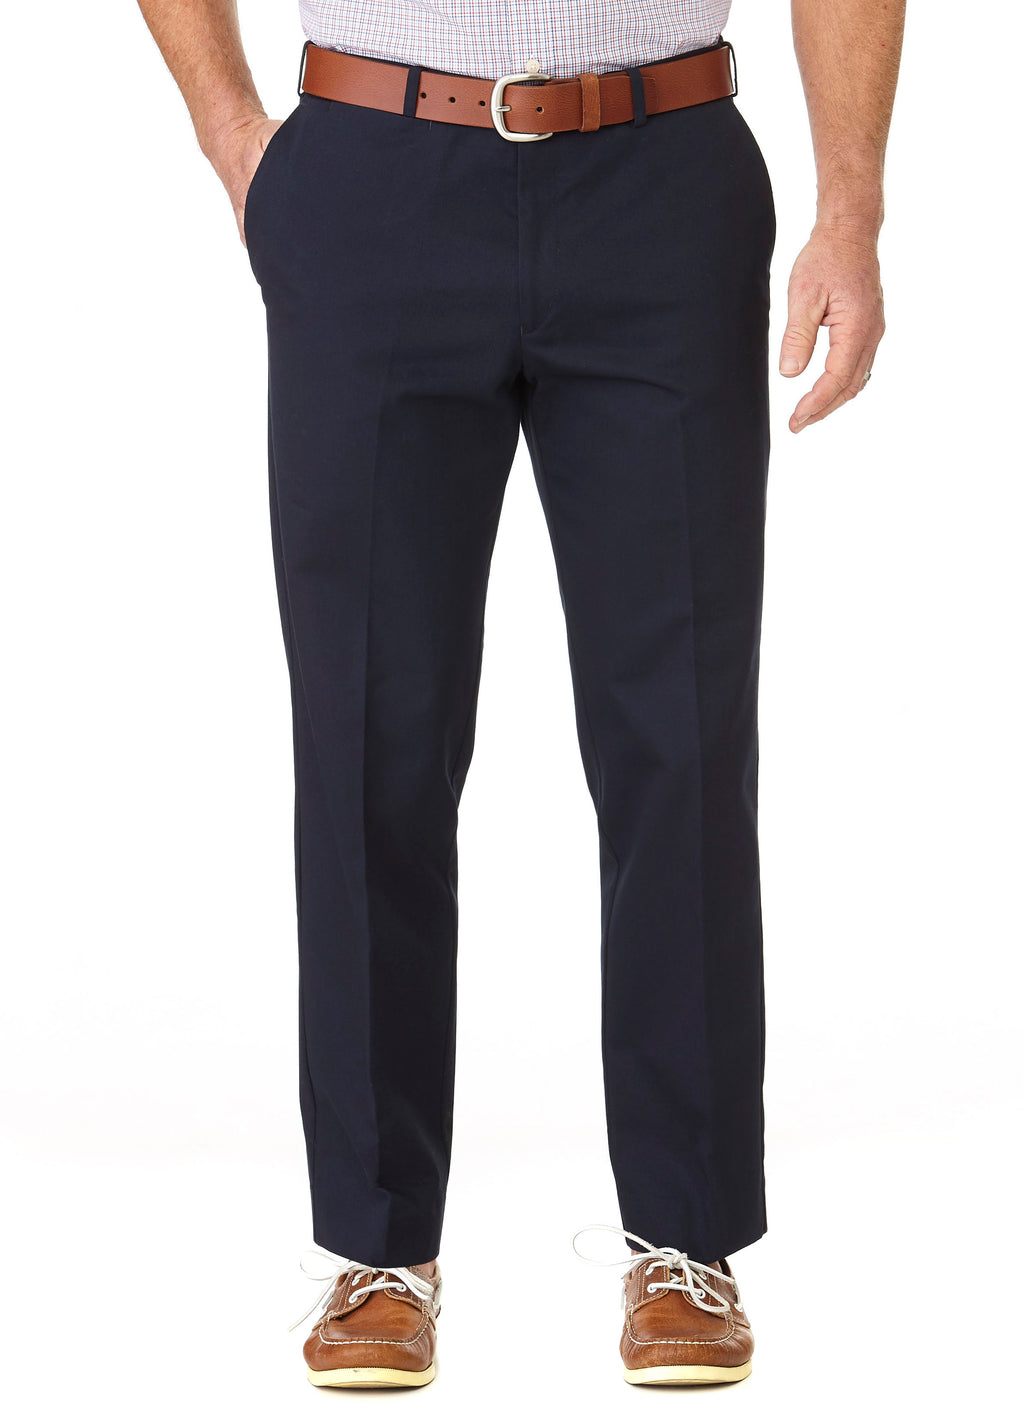 CLARENDON FLAT FRONT CASUAL TROUSER